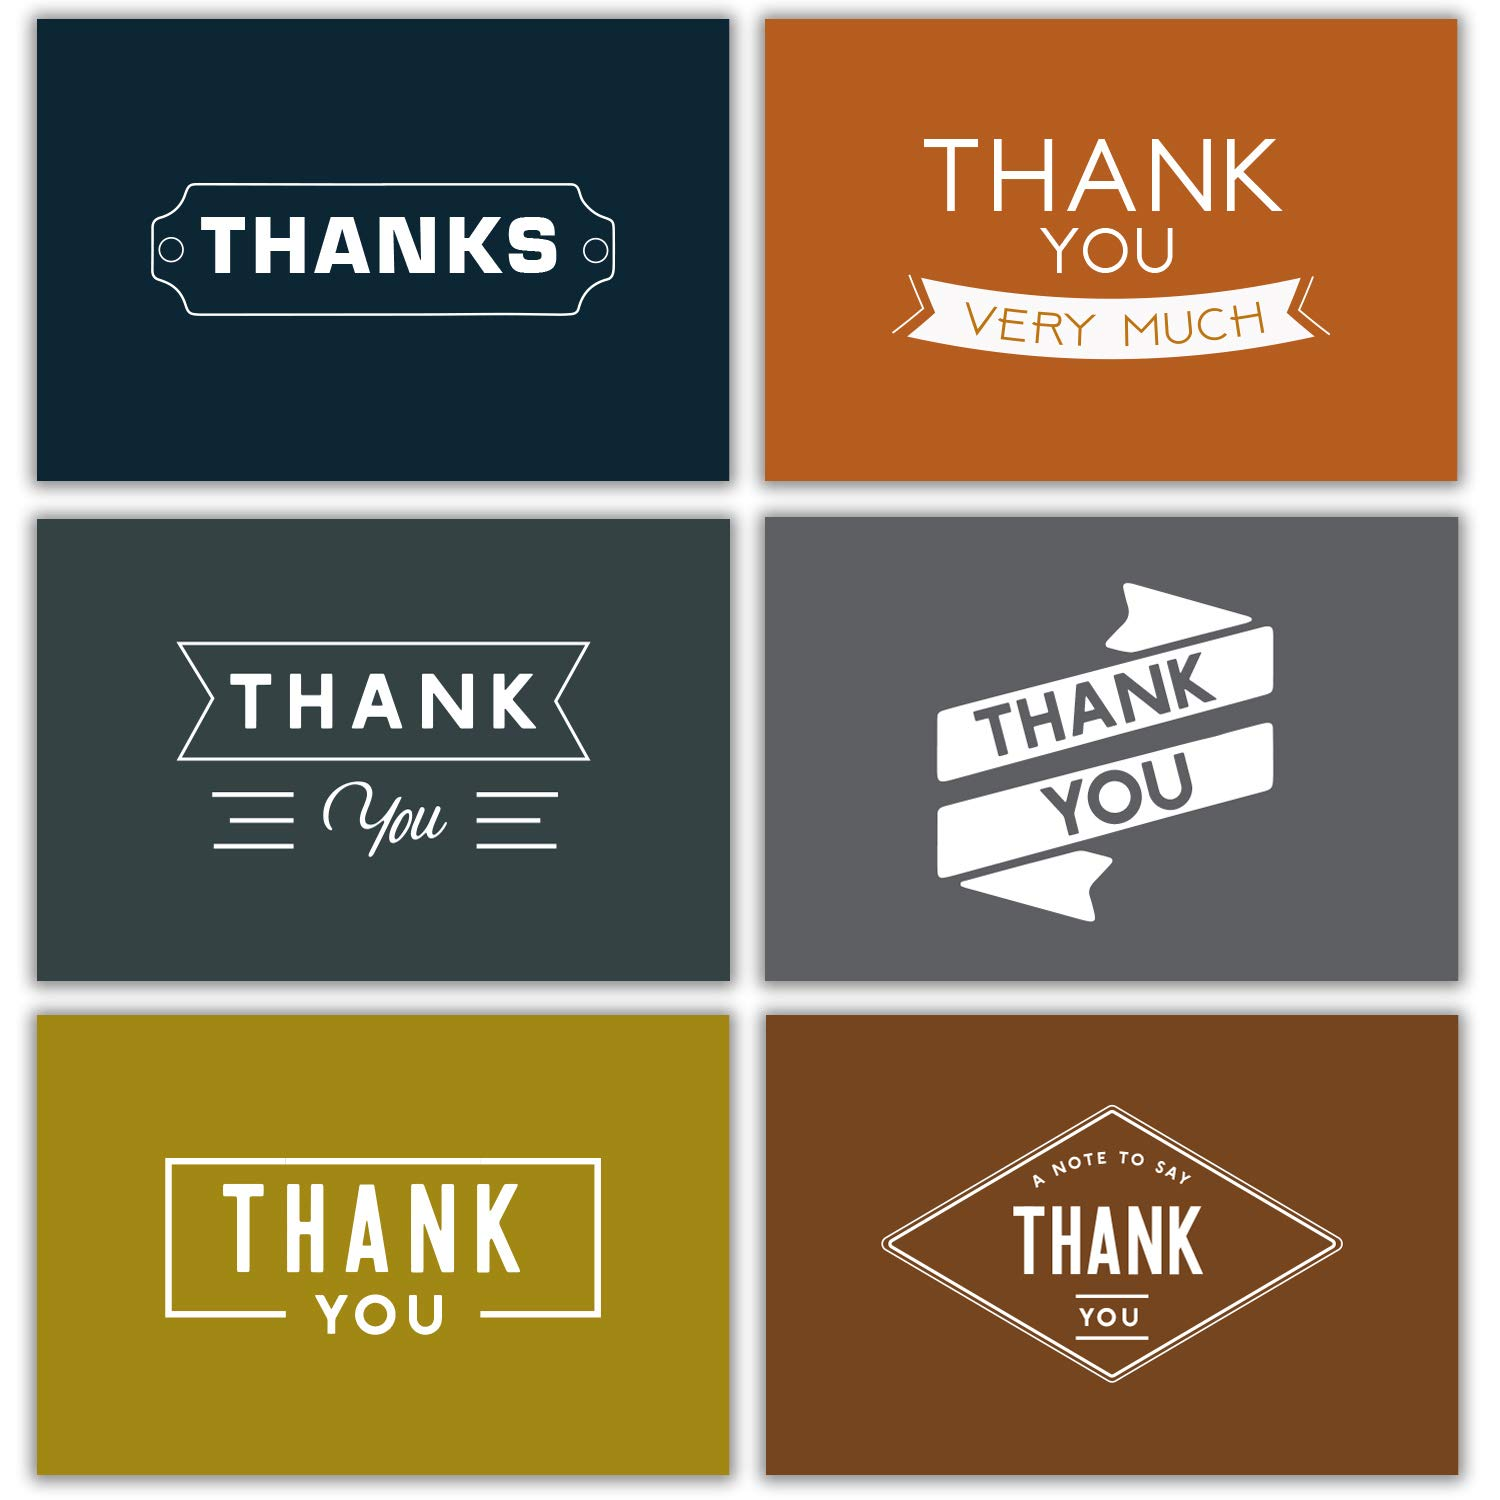 Men Thank You Notes Bulk Retro 48 Thank You Cards Bulk w/Stickers & White Envelopes - Vintage & Retro - 4x6 Blank Note Cards - Perfect for Weddings, Bridal Showers, Graduation, and Baby Showers